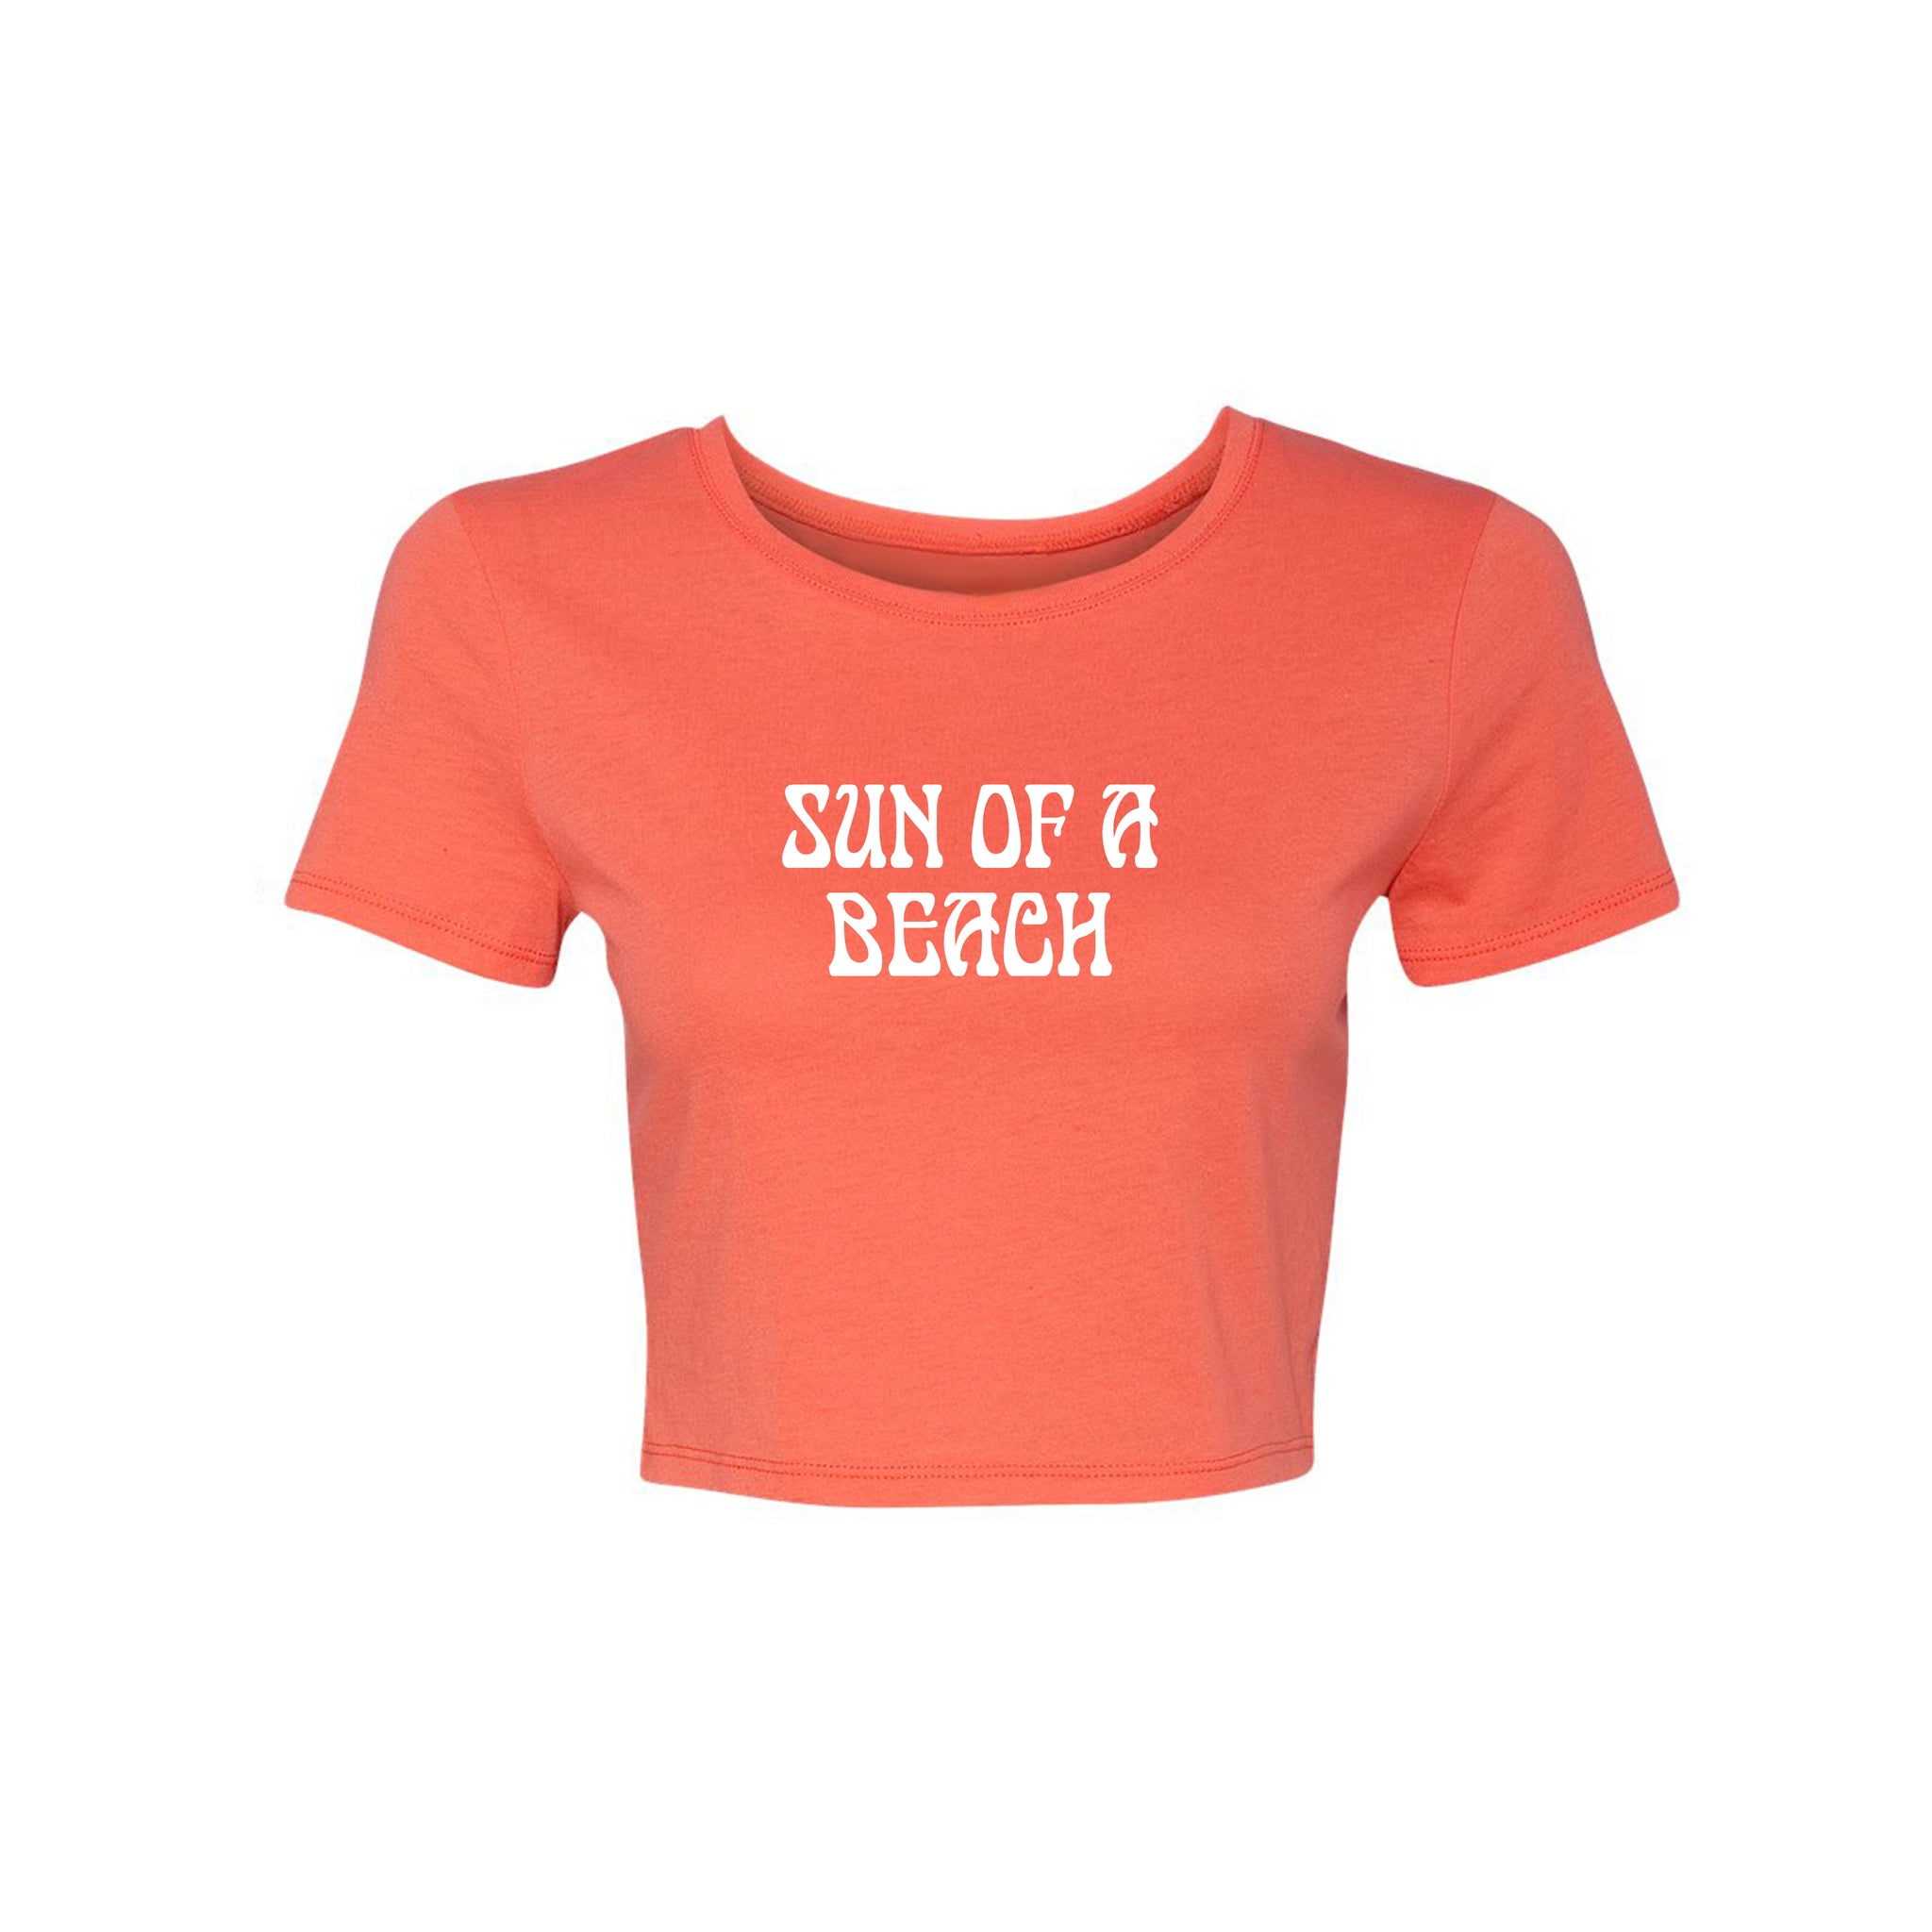 SUN OF A BEACH [WOMEN'S CROP TEE]